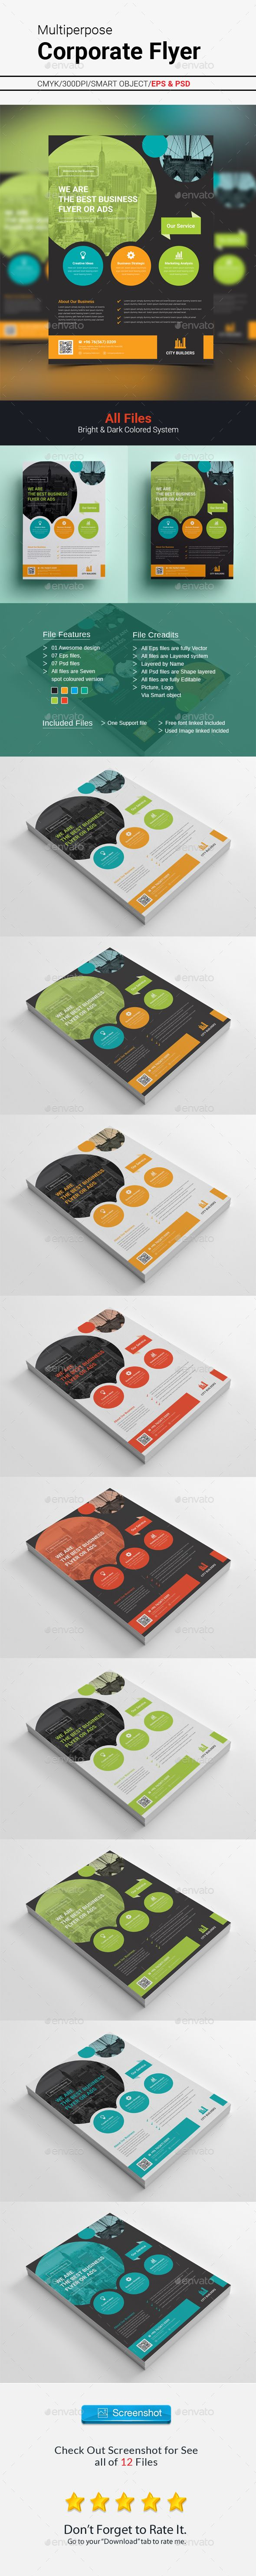 Corporate Flyer Template PSD #design Download: http://graphicriver.net/item/corporate-flyer/14398981?ref=ksioks